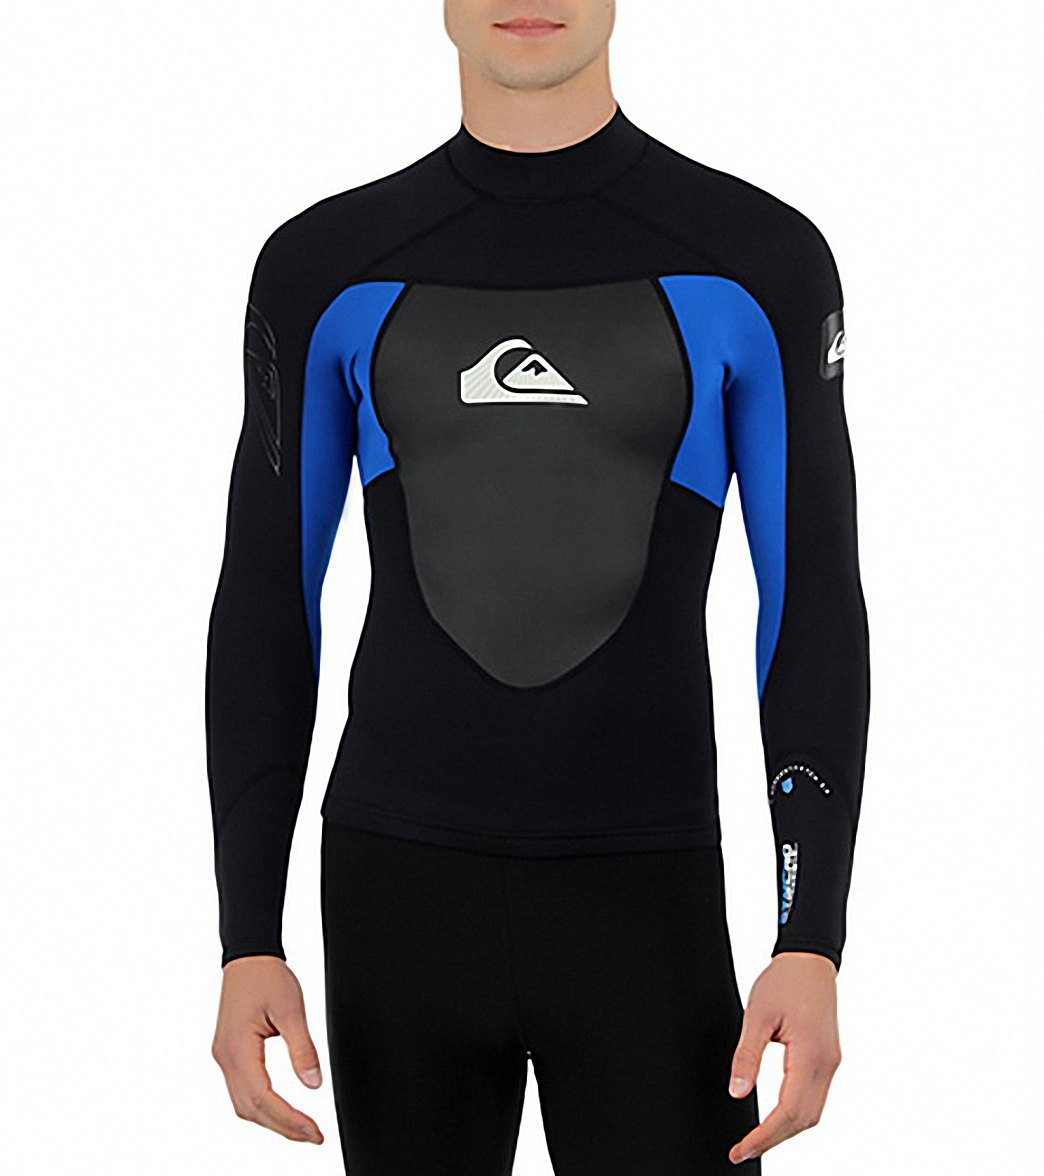 Quiksilver Syncro Long Sleeve Wetsuit Jacket 1.5 MM at SwimOutlet.com -  Free Shipping 05f8c40b6